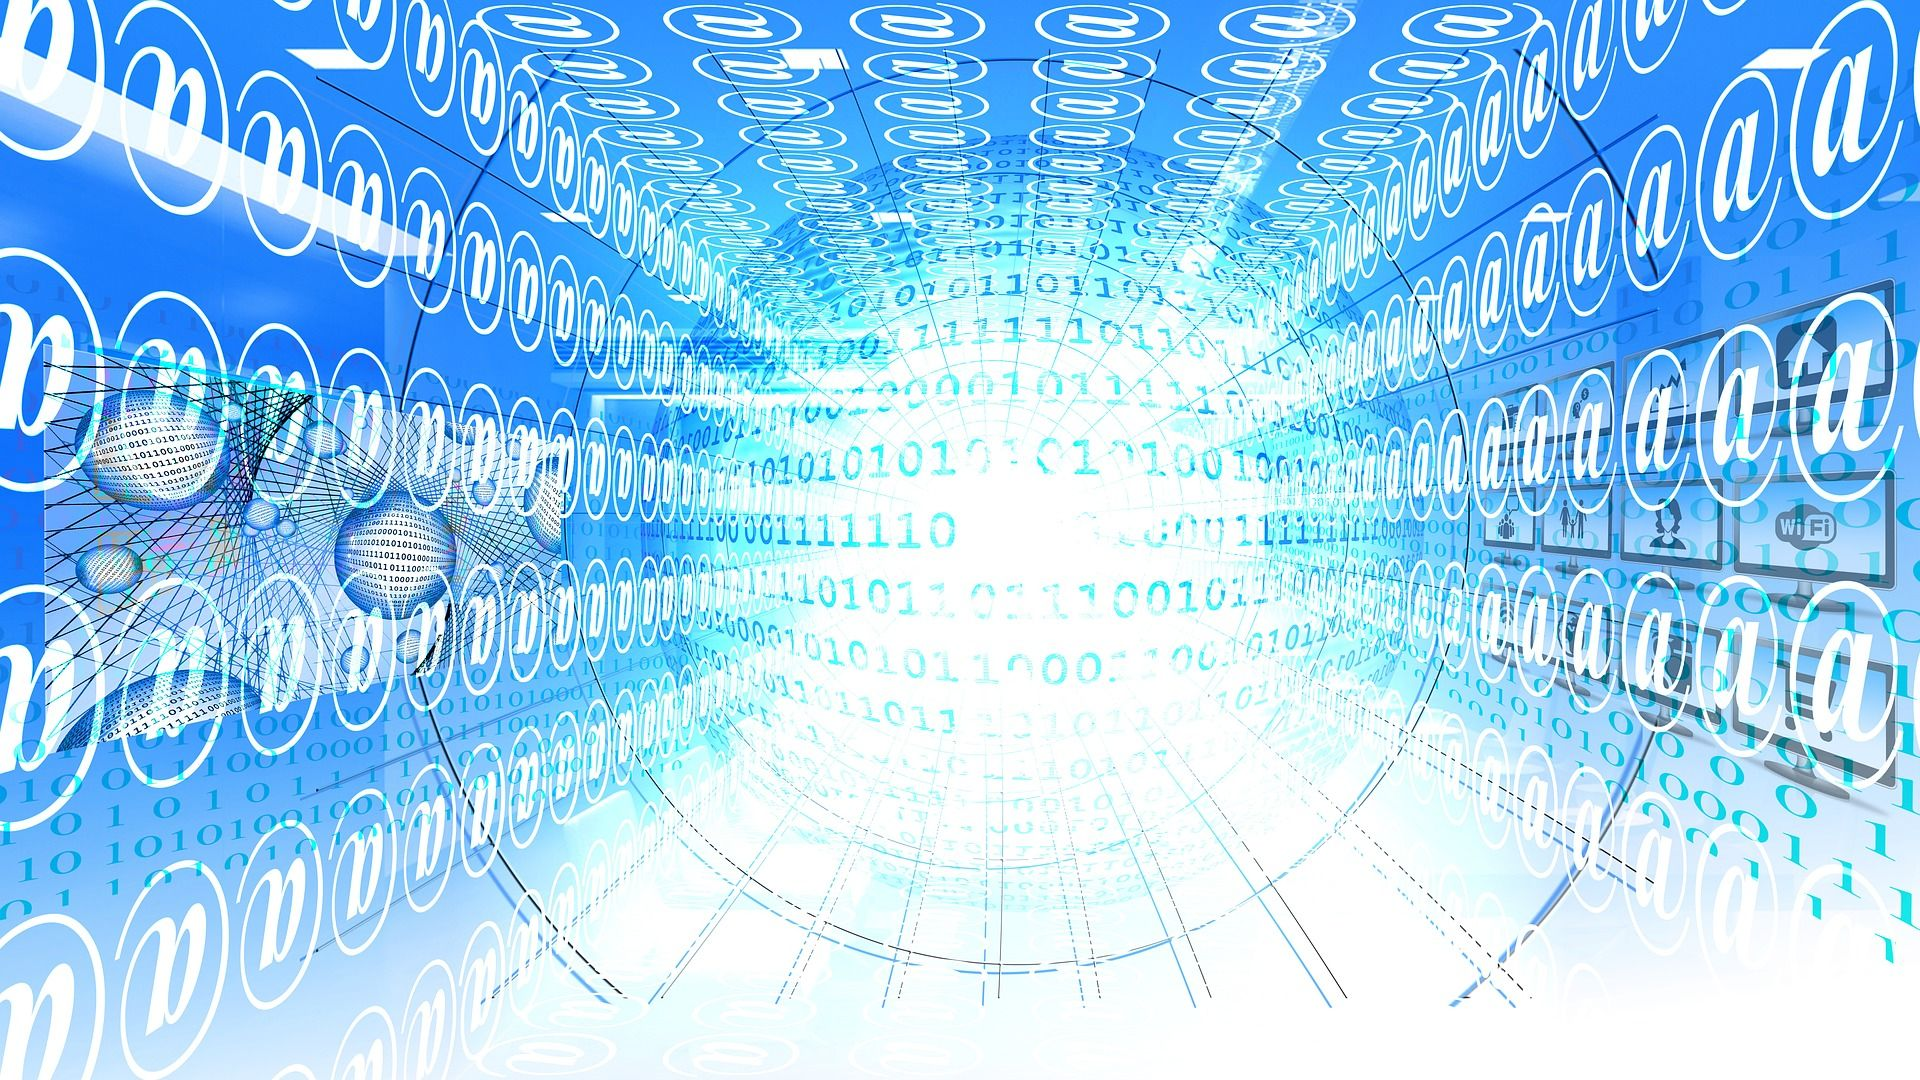 Is big data out of the question for recruiting? A new